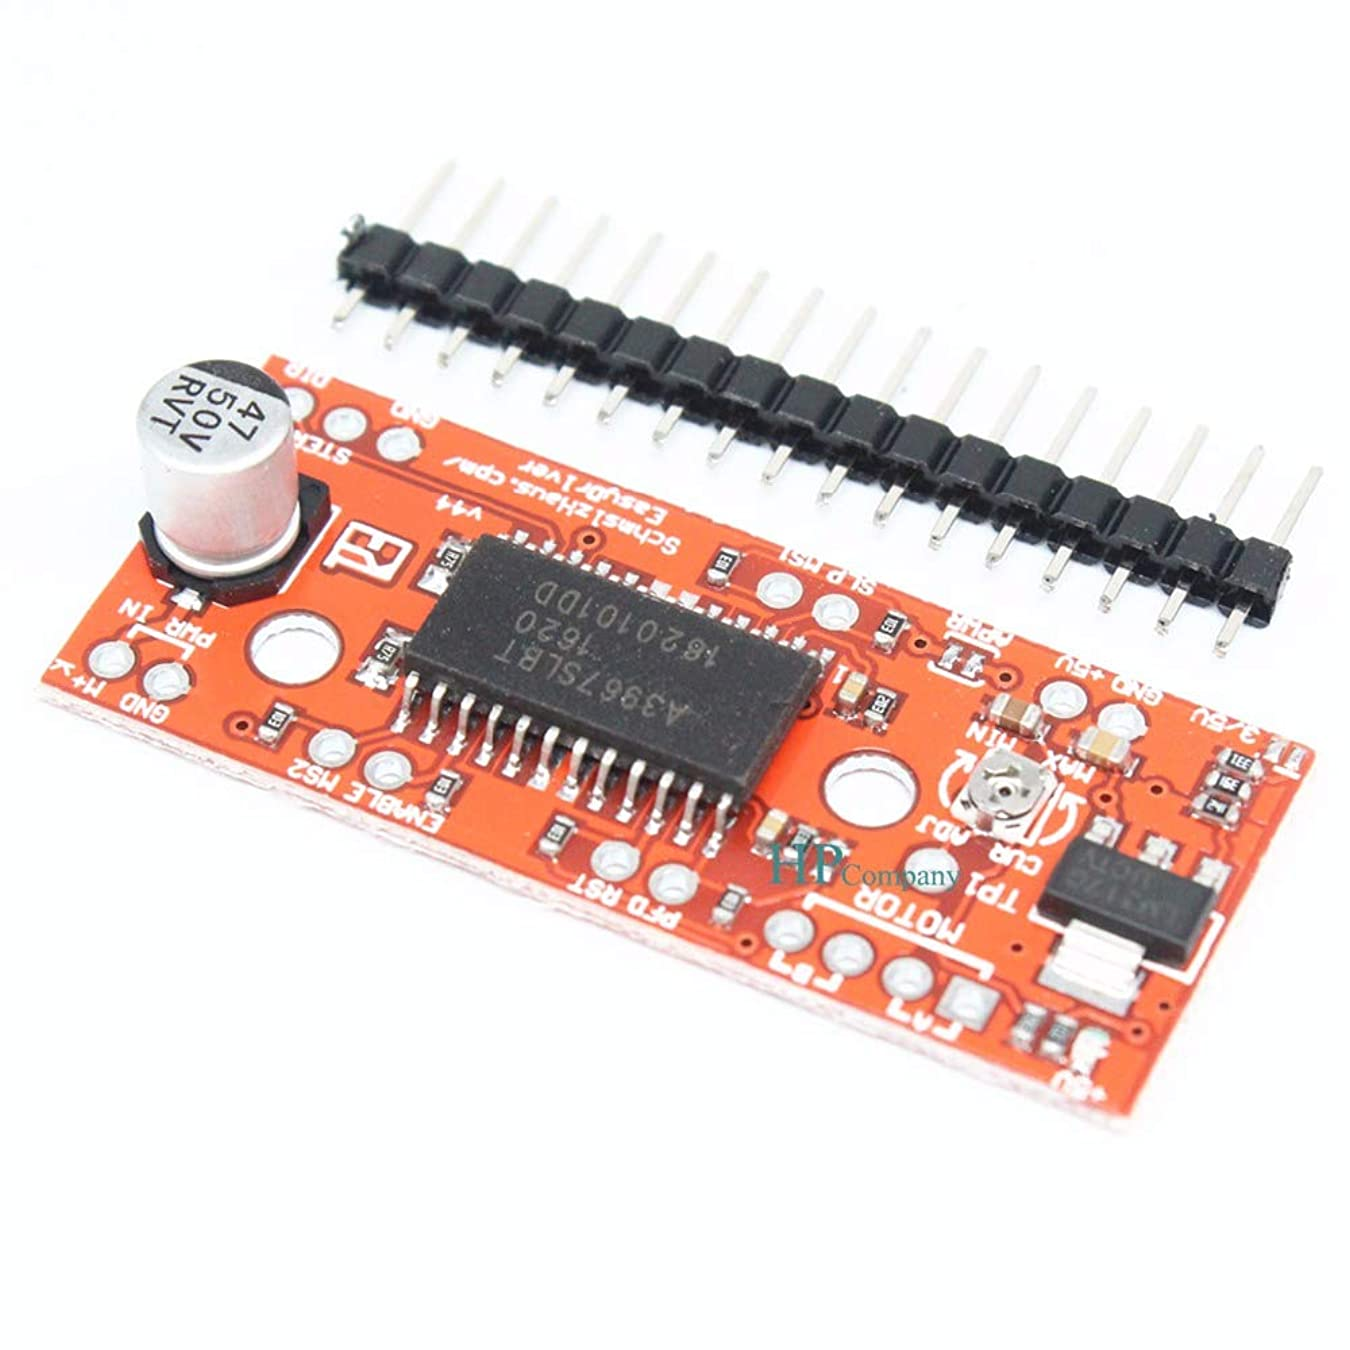 煙突ペレグリネーション家具WillBest 10PCS A3967 EasyDriver Shield stepping Stepper Motor Driver V44 For Arduino A3967SLBT